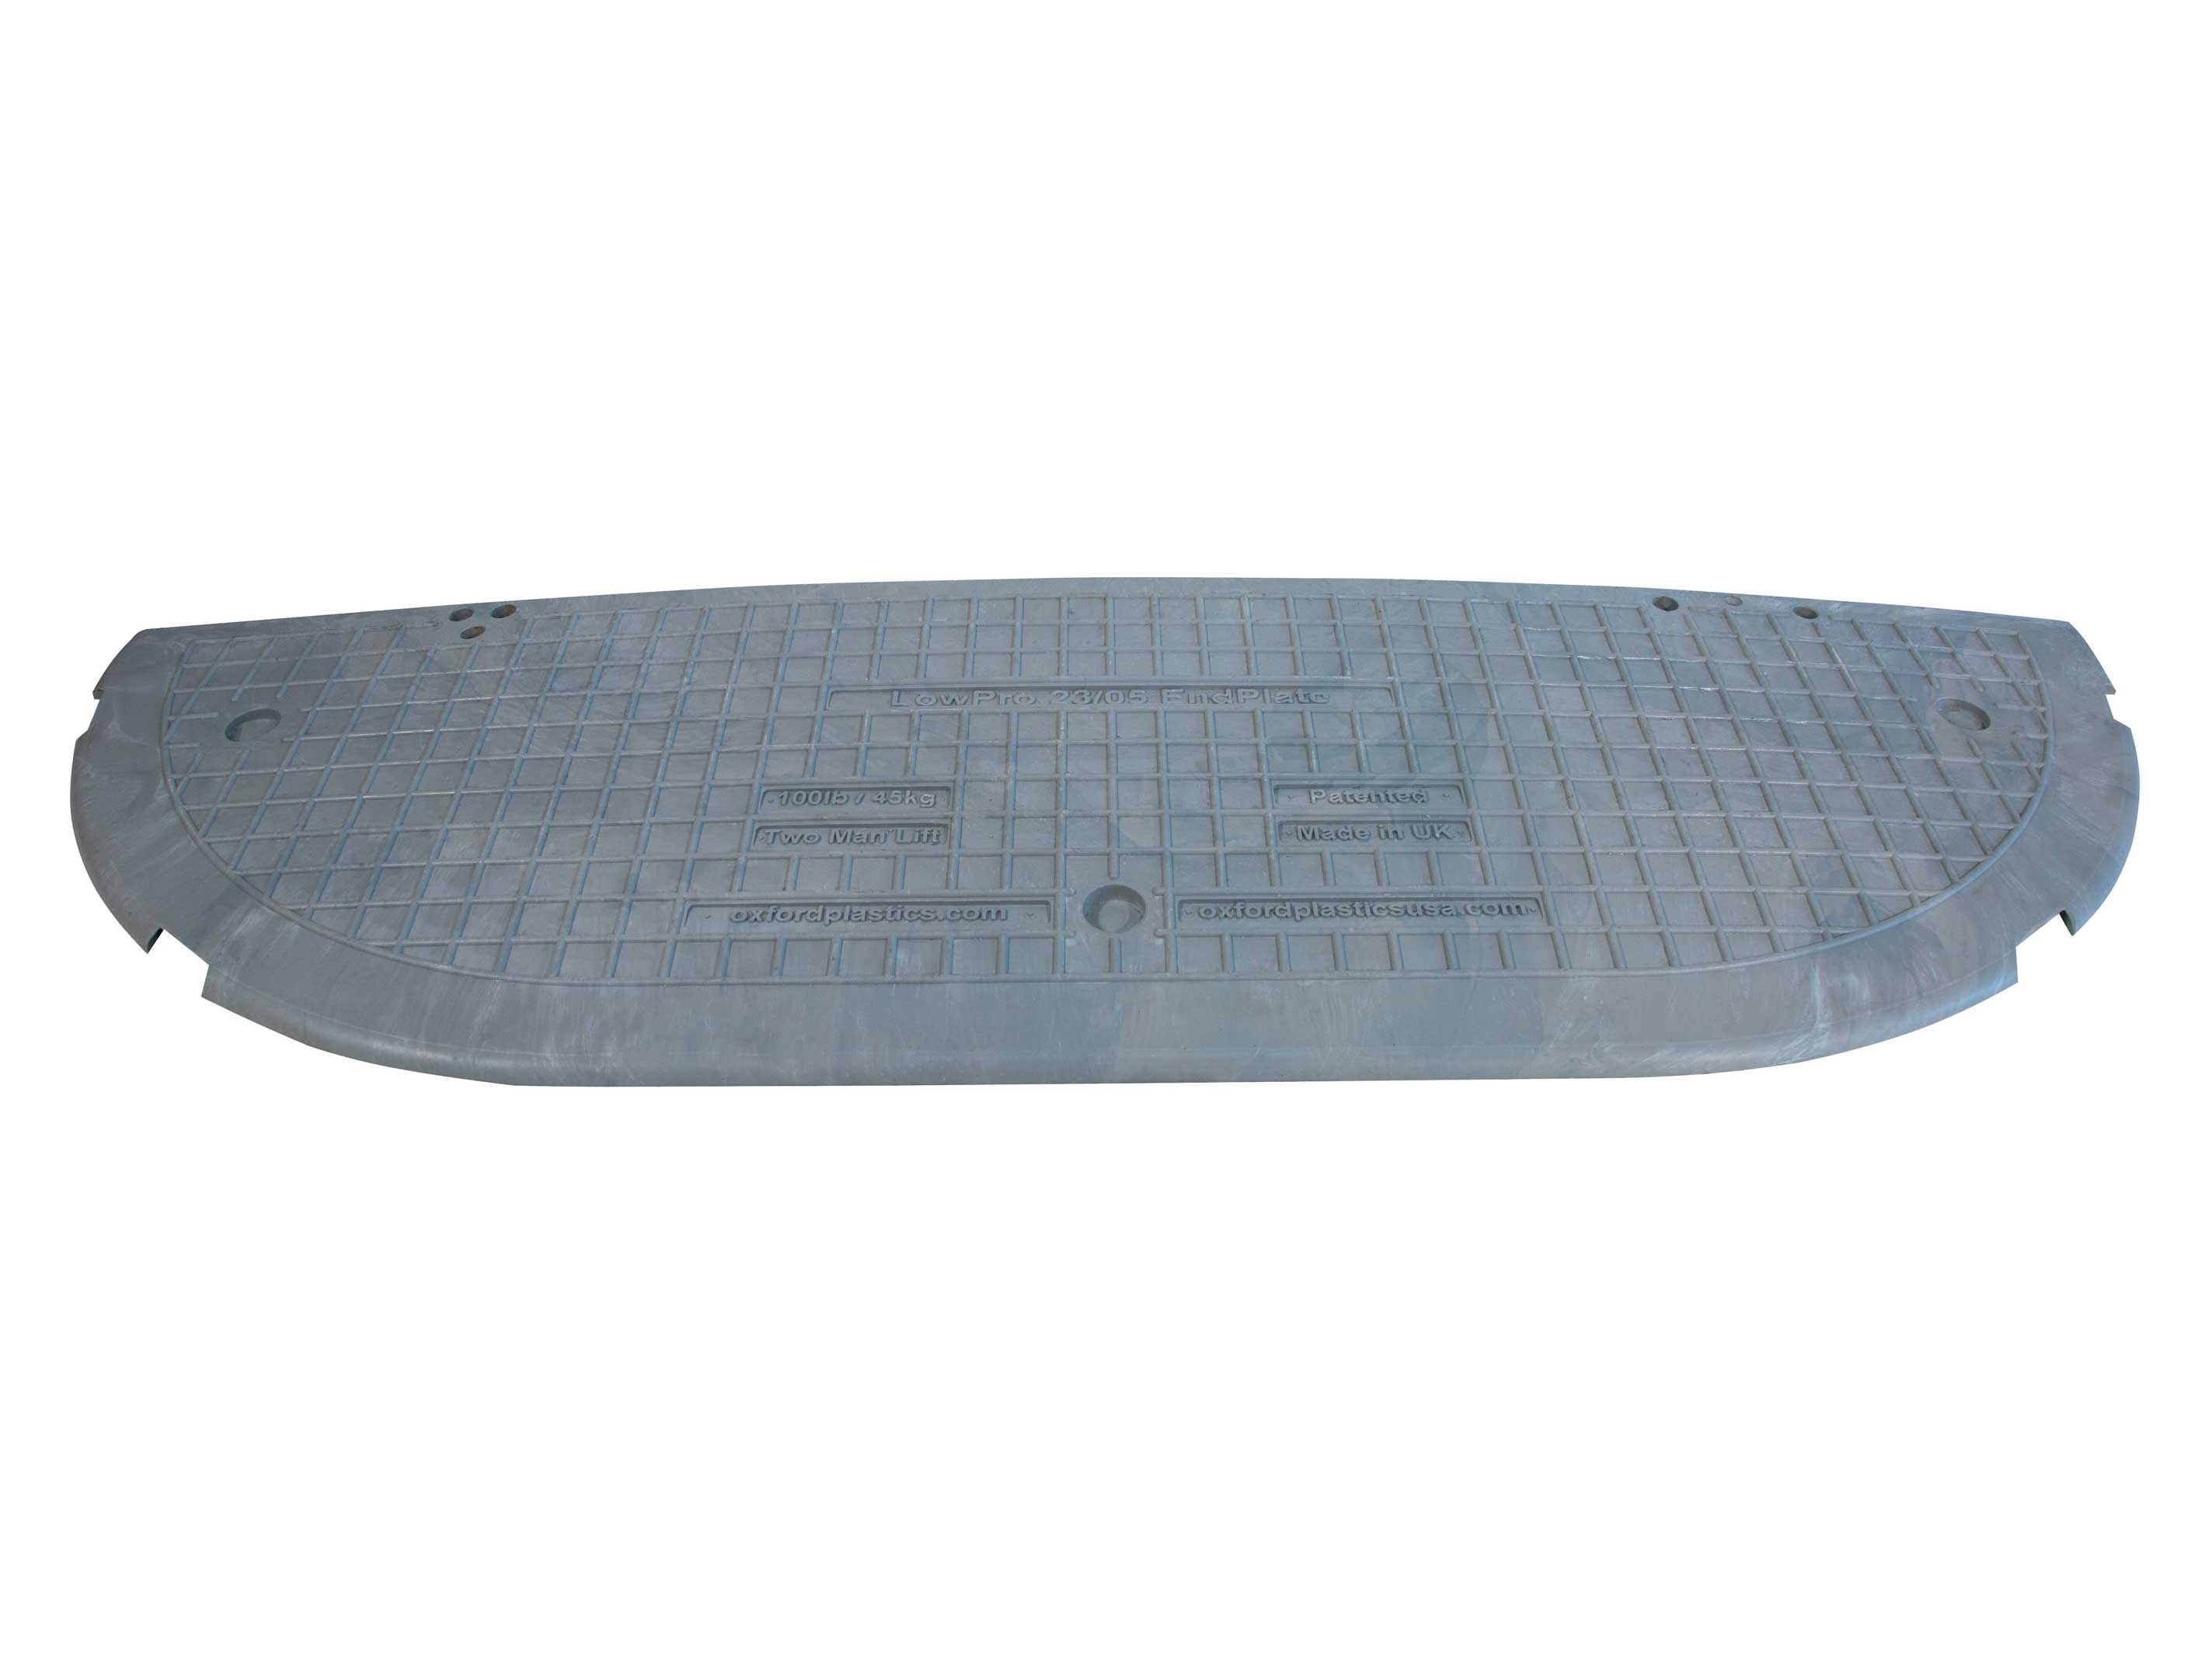 LowPro 23/05 Road Plate End